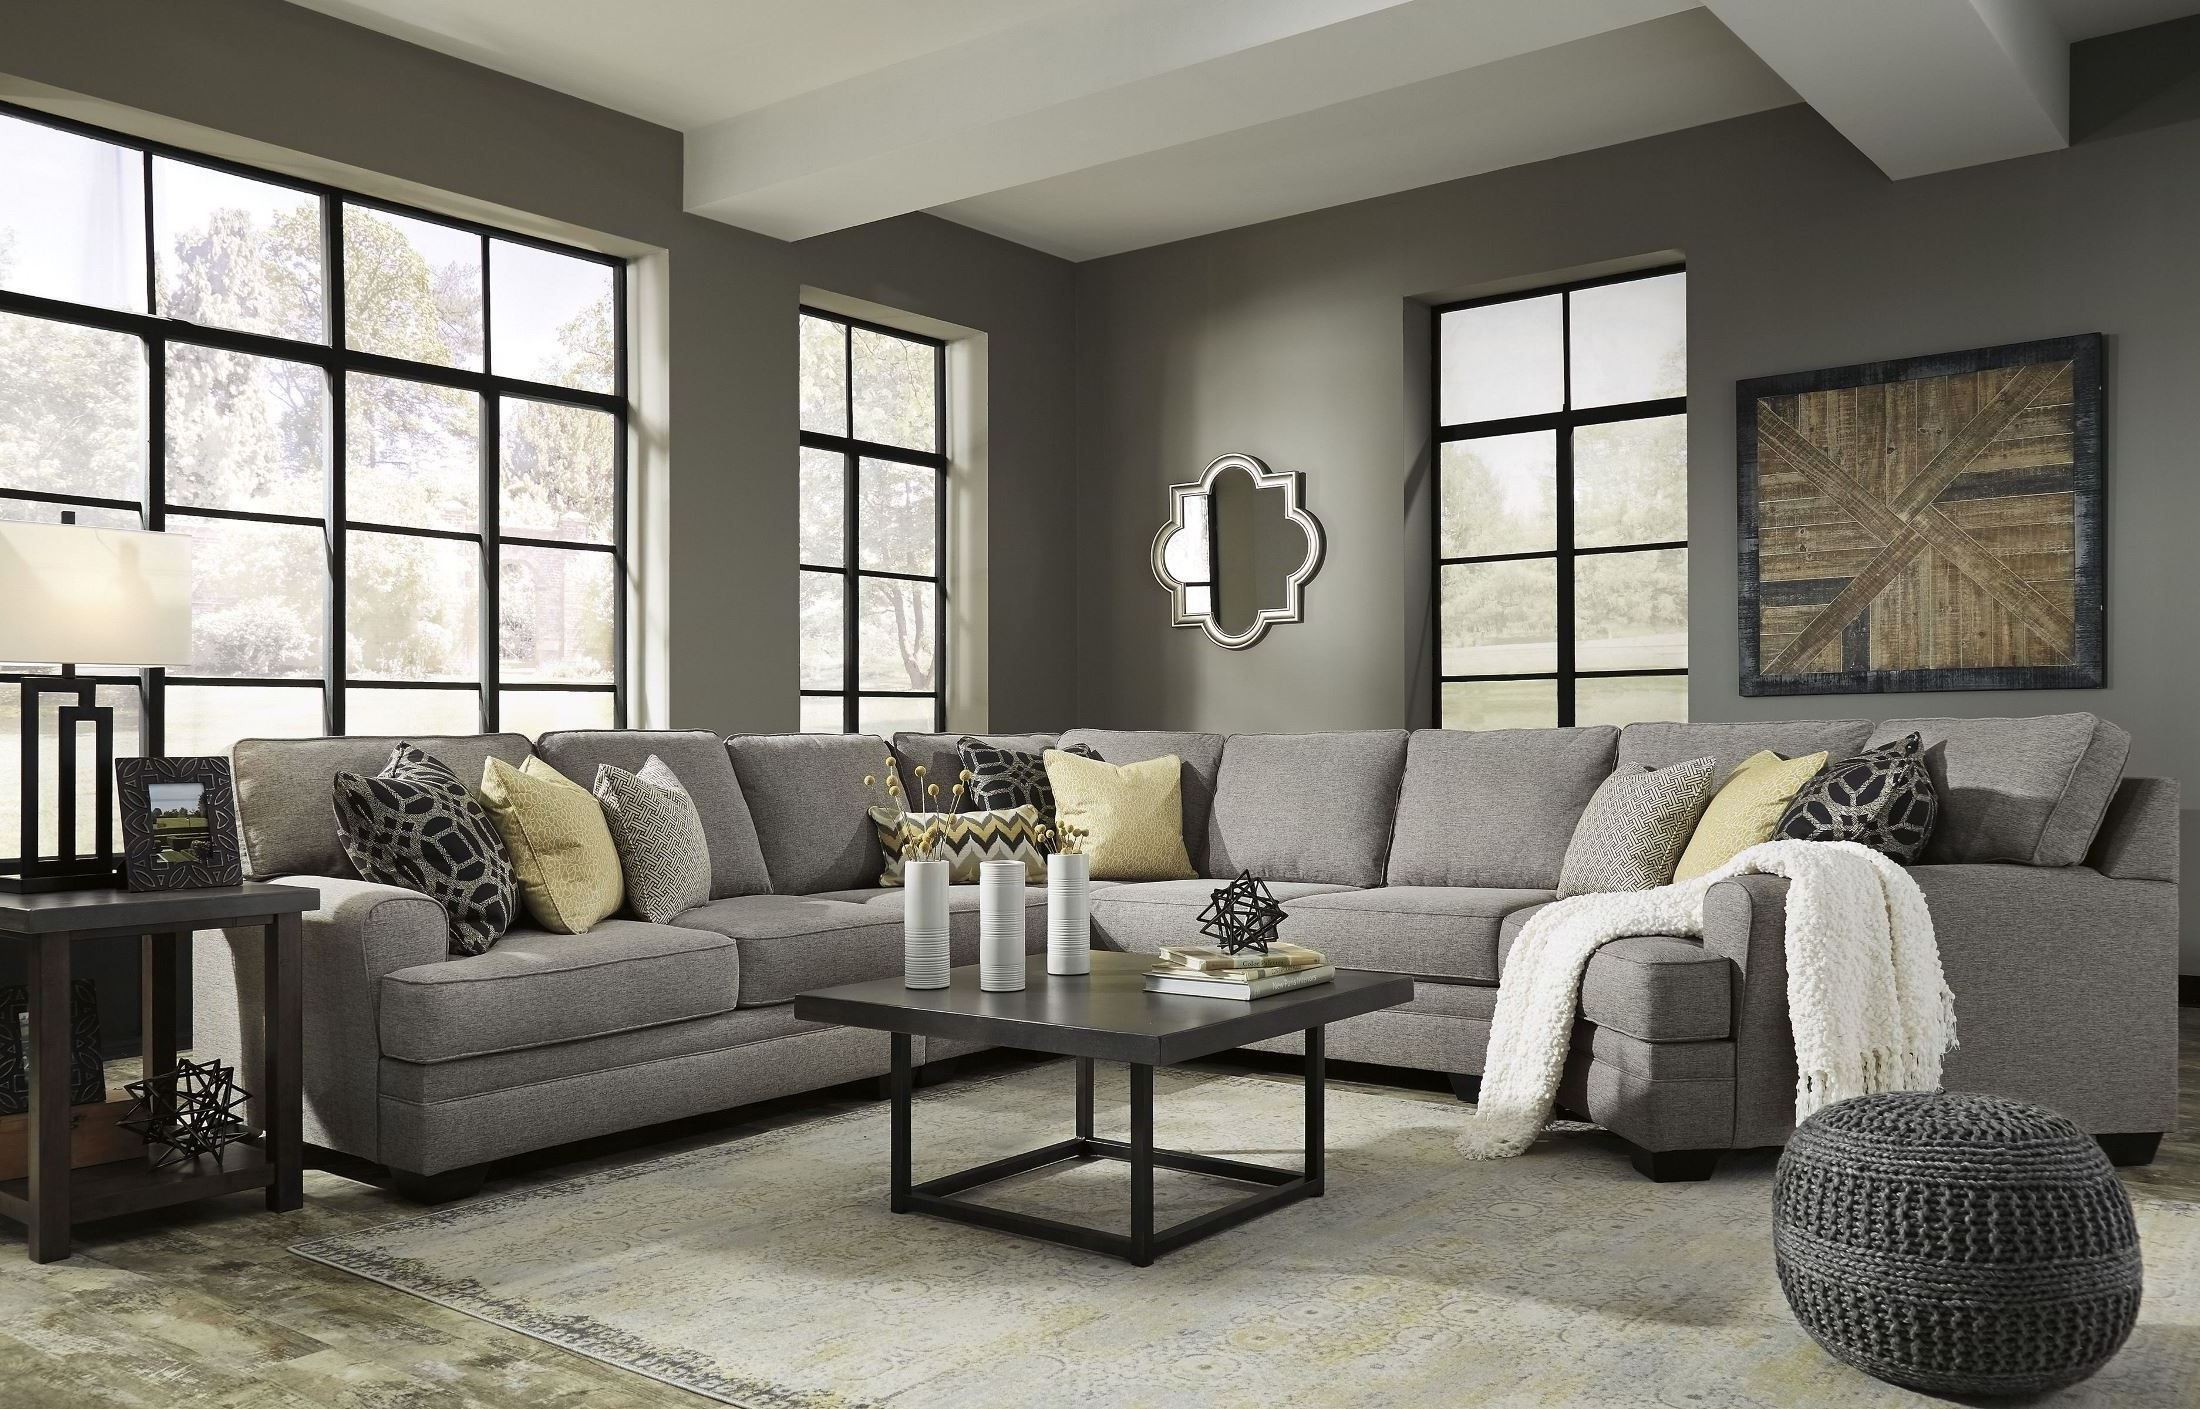 Coleman Furniture In Well Known Aspen 2 Piece Sleeper Sectionals With Laf Chaise (View 12 of 20)